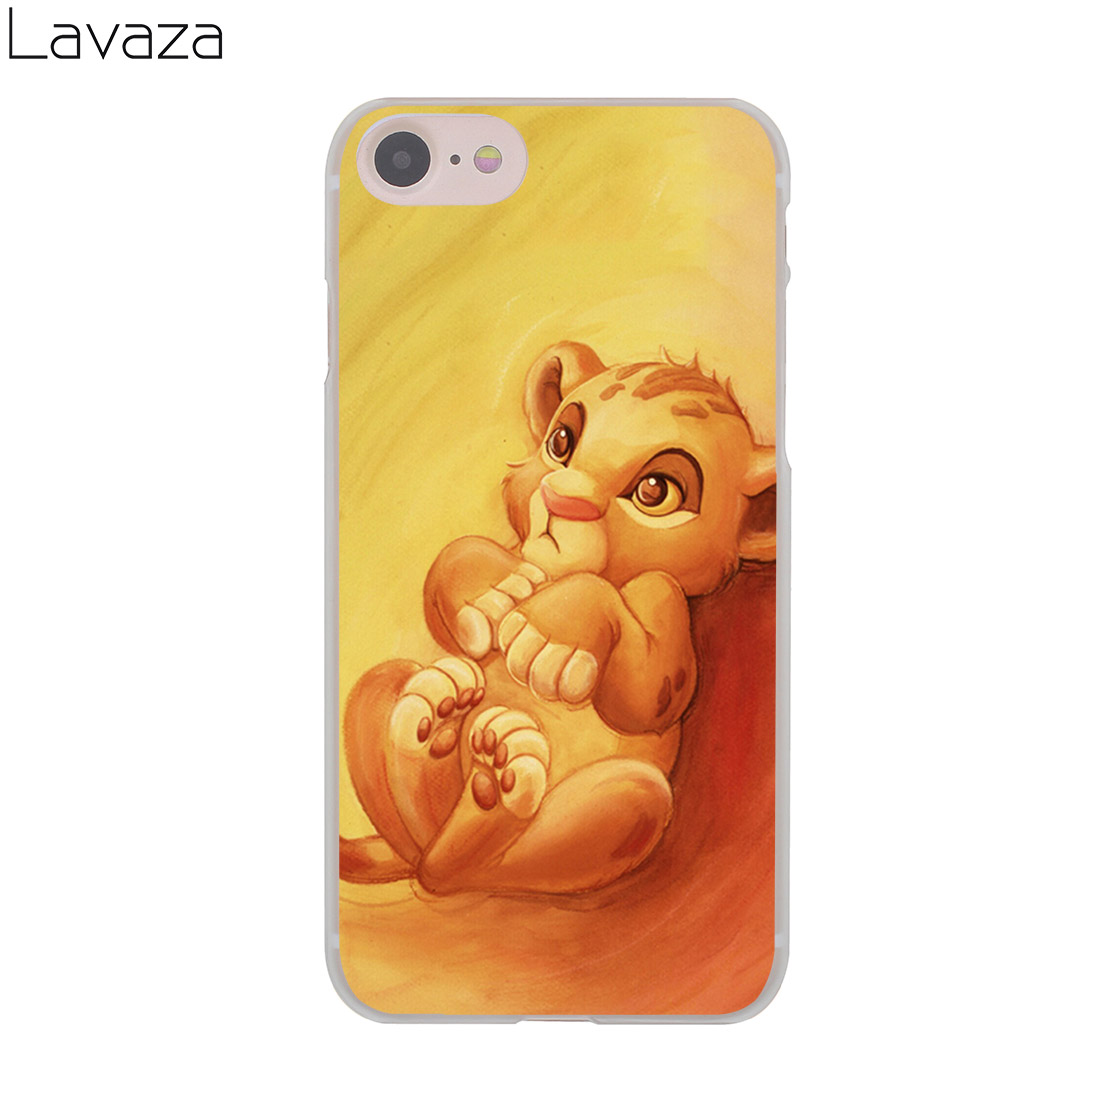 coque simba iphone 6